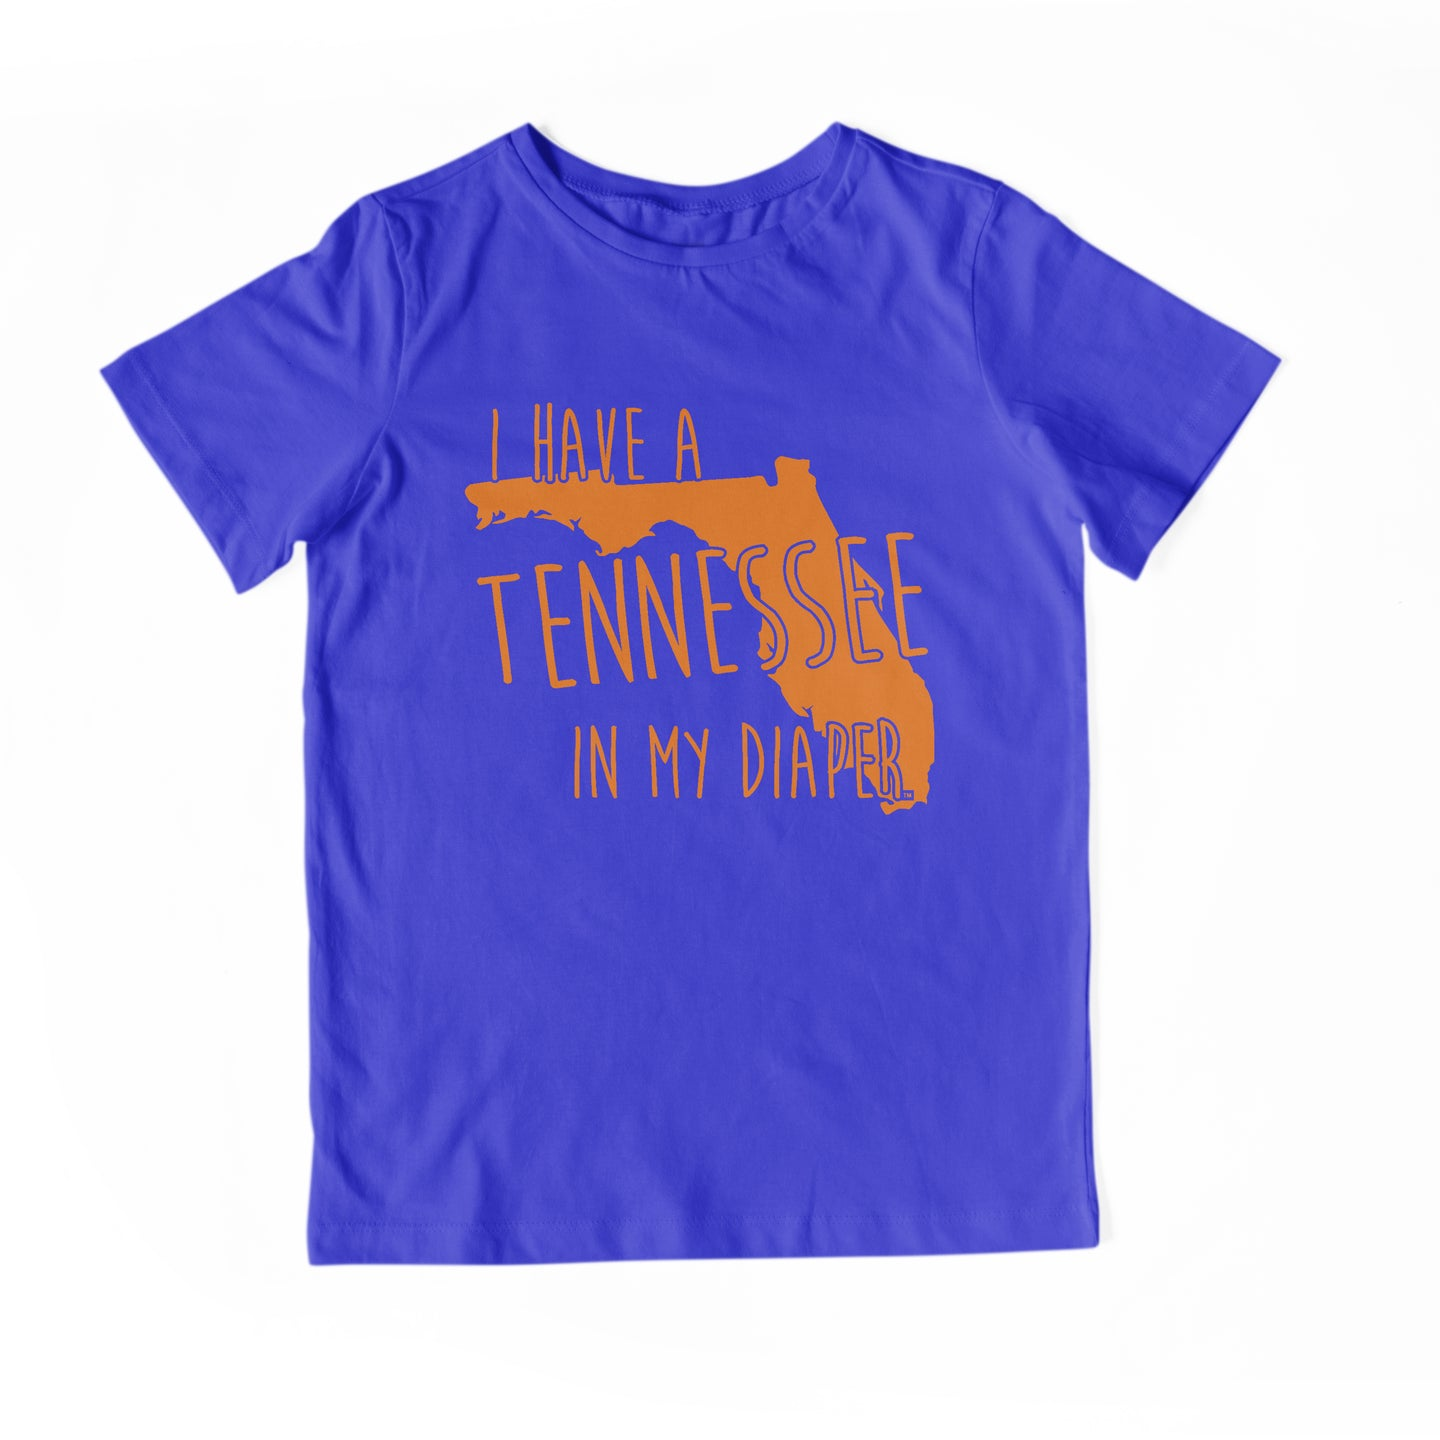 I HAVE A TENNESSEE IN MY DIAPER Child Tee